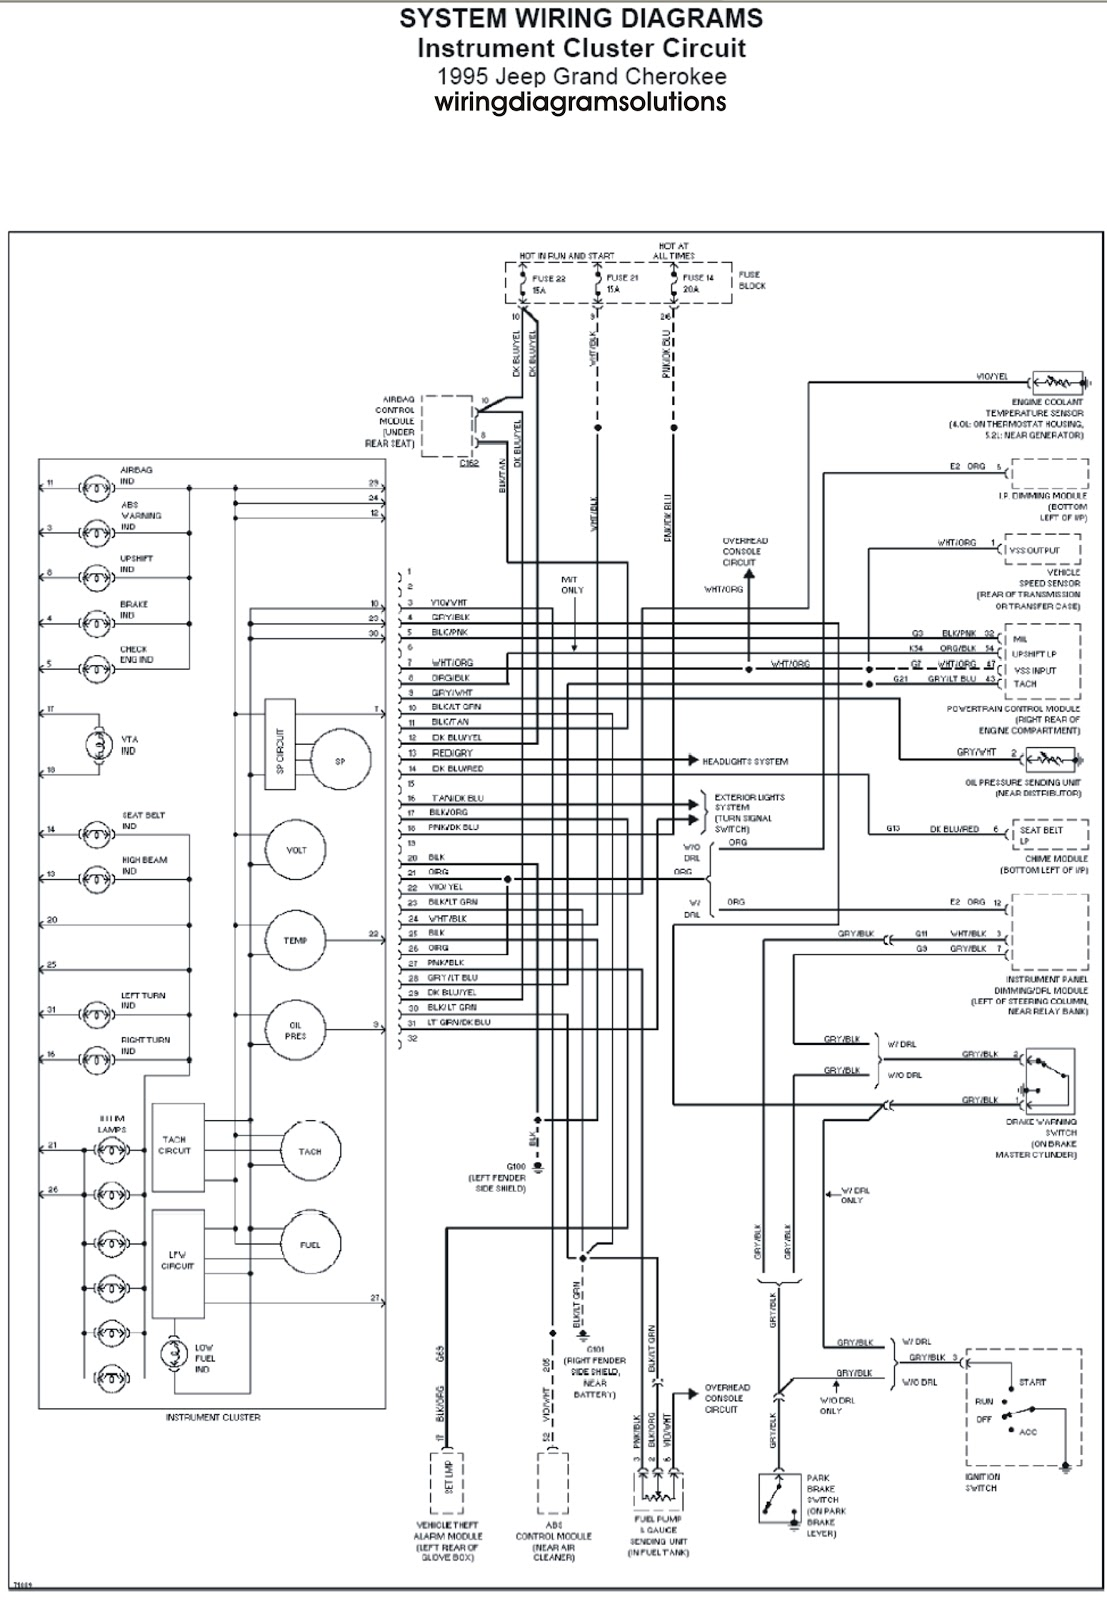 2004 jeep grand cherokee wiring harness diagram just wiring data 2001 jeep grand cherokee power window [ 1107 x 1600 Pixel ]